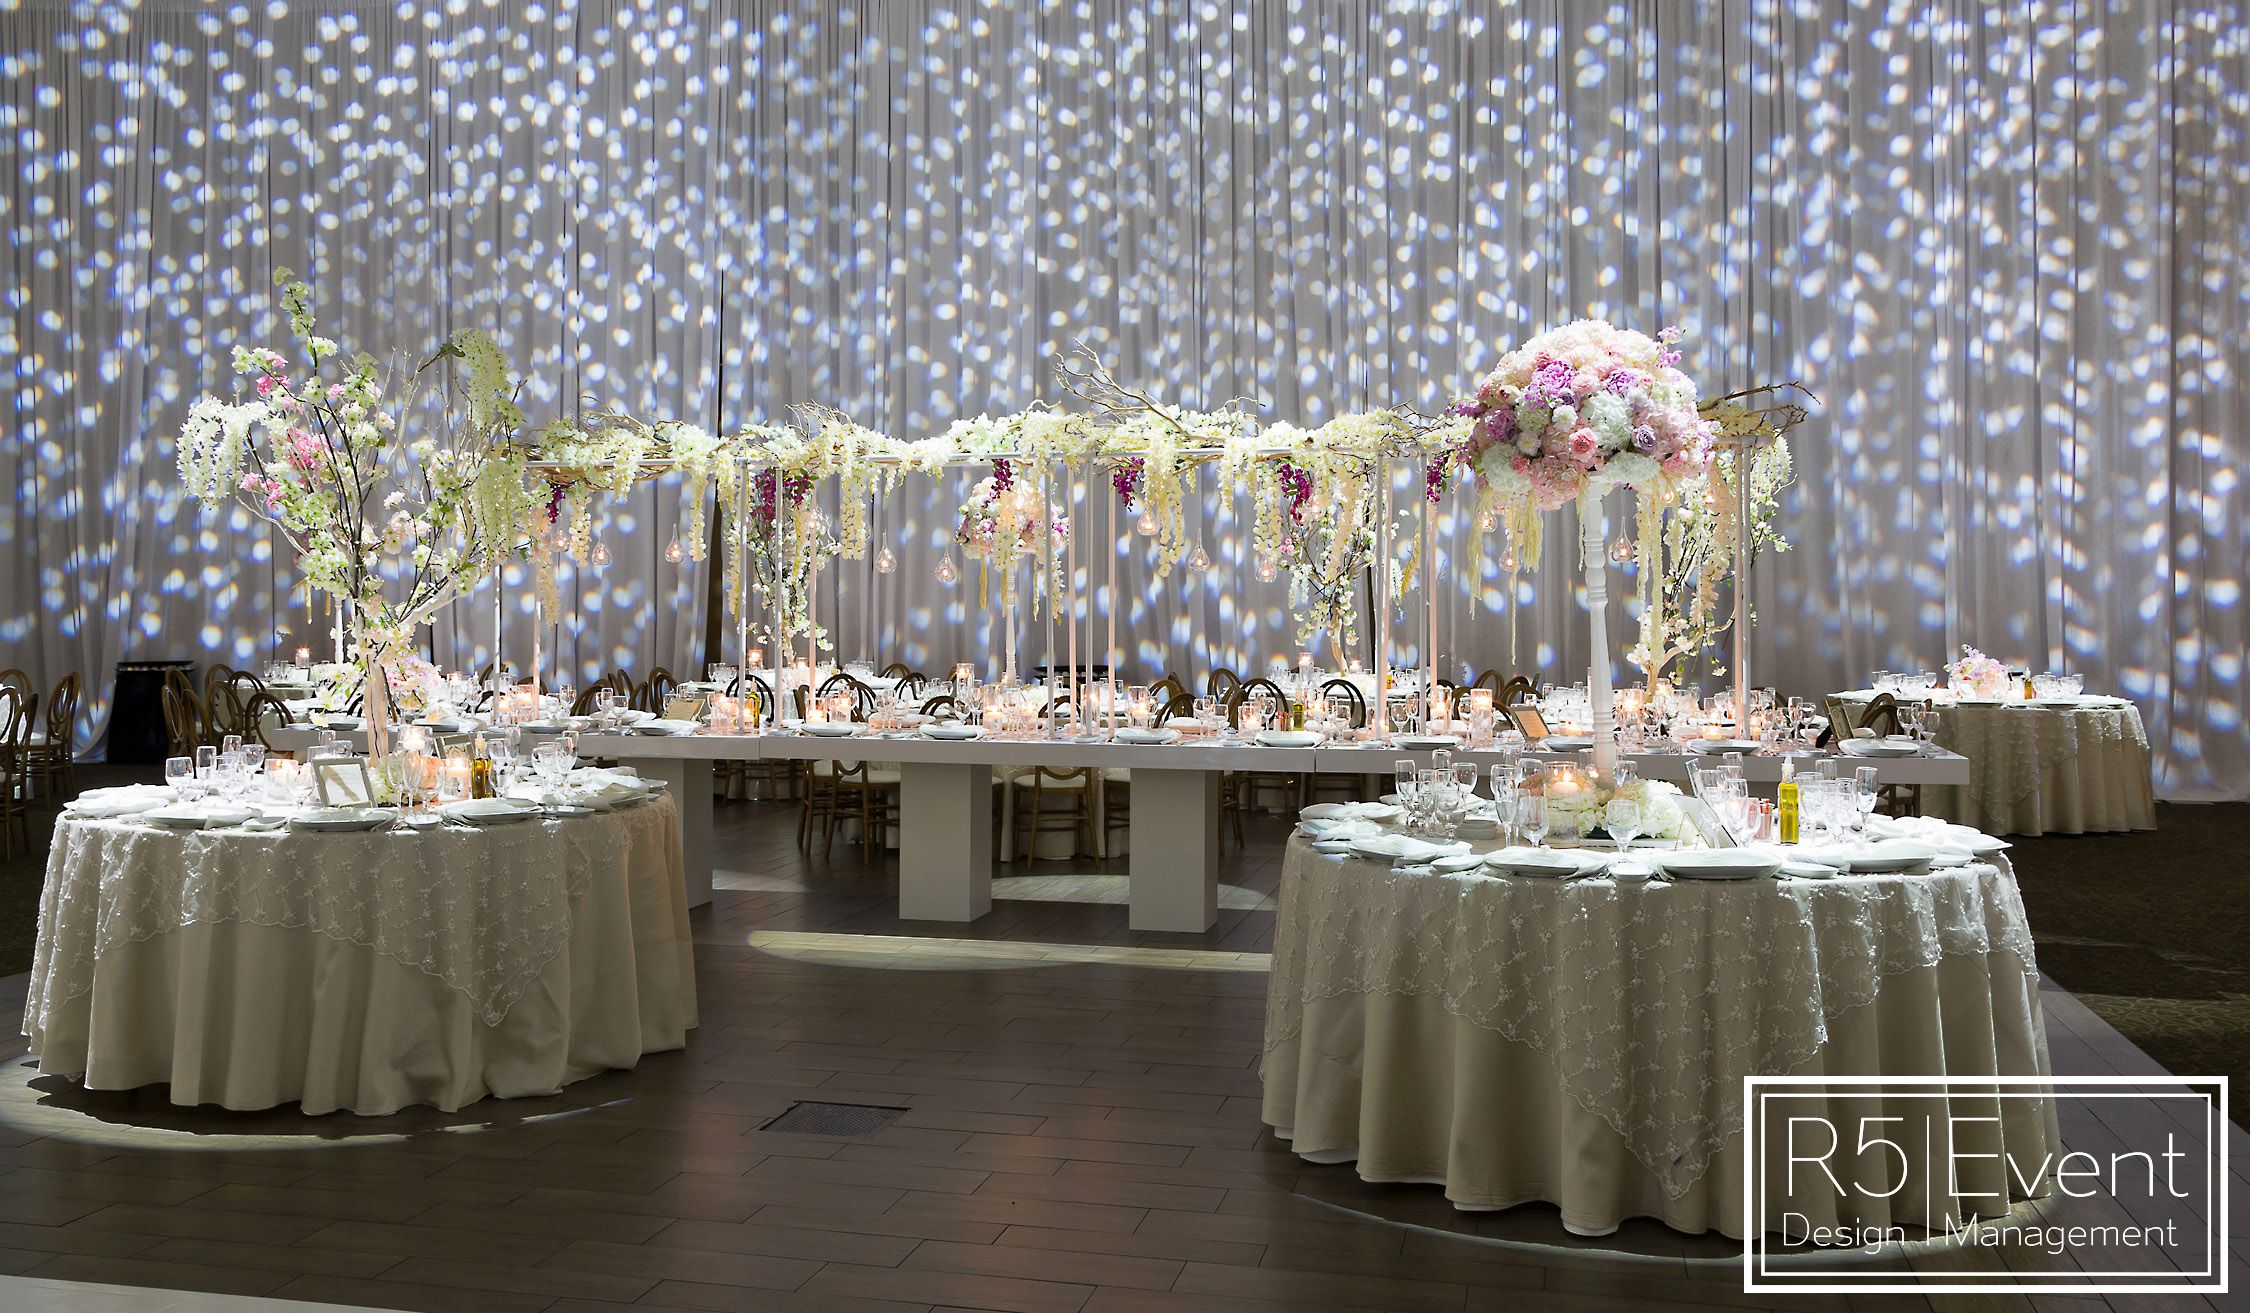 Tall Flower Arrangements Cherry Blossom Trees Wisteria Roses And Magical Wedding By R5 Event Desi Tall Flower Arrangements Event Design Wedding Decorations